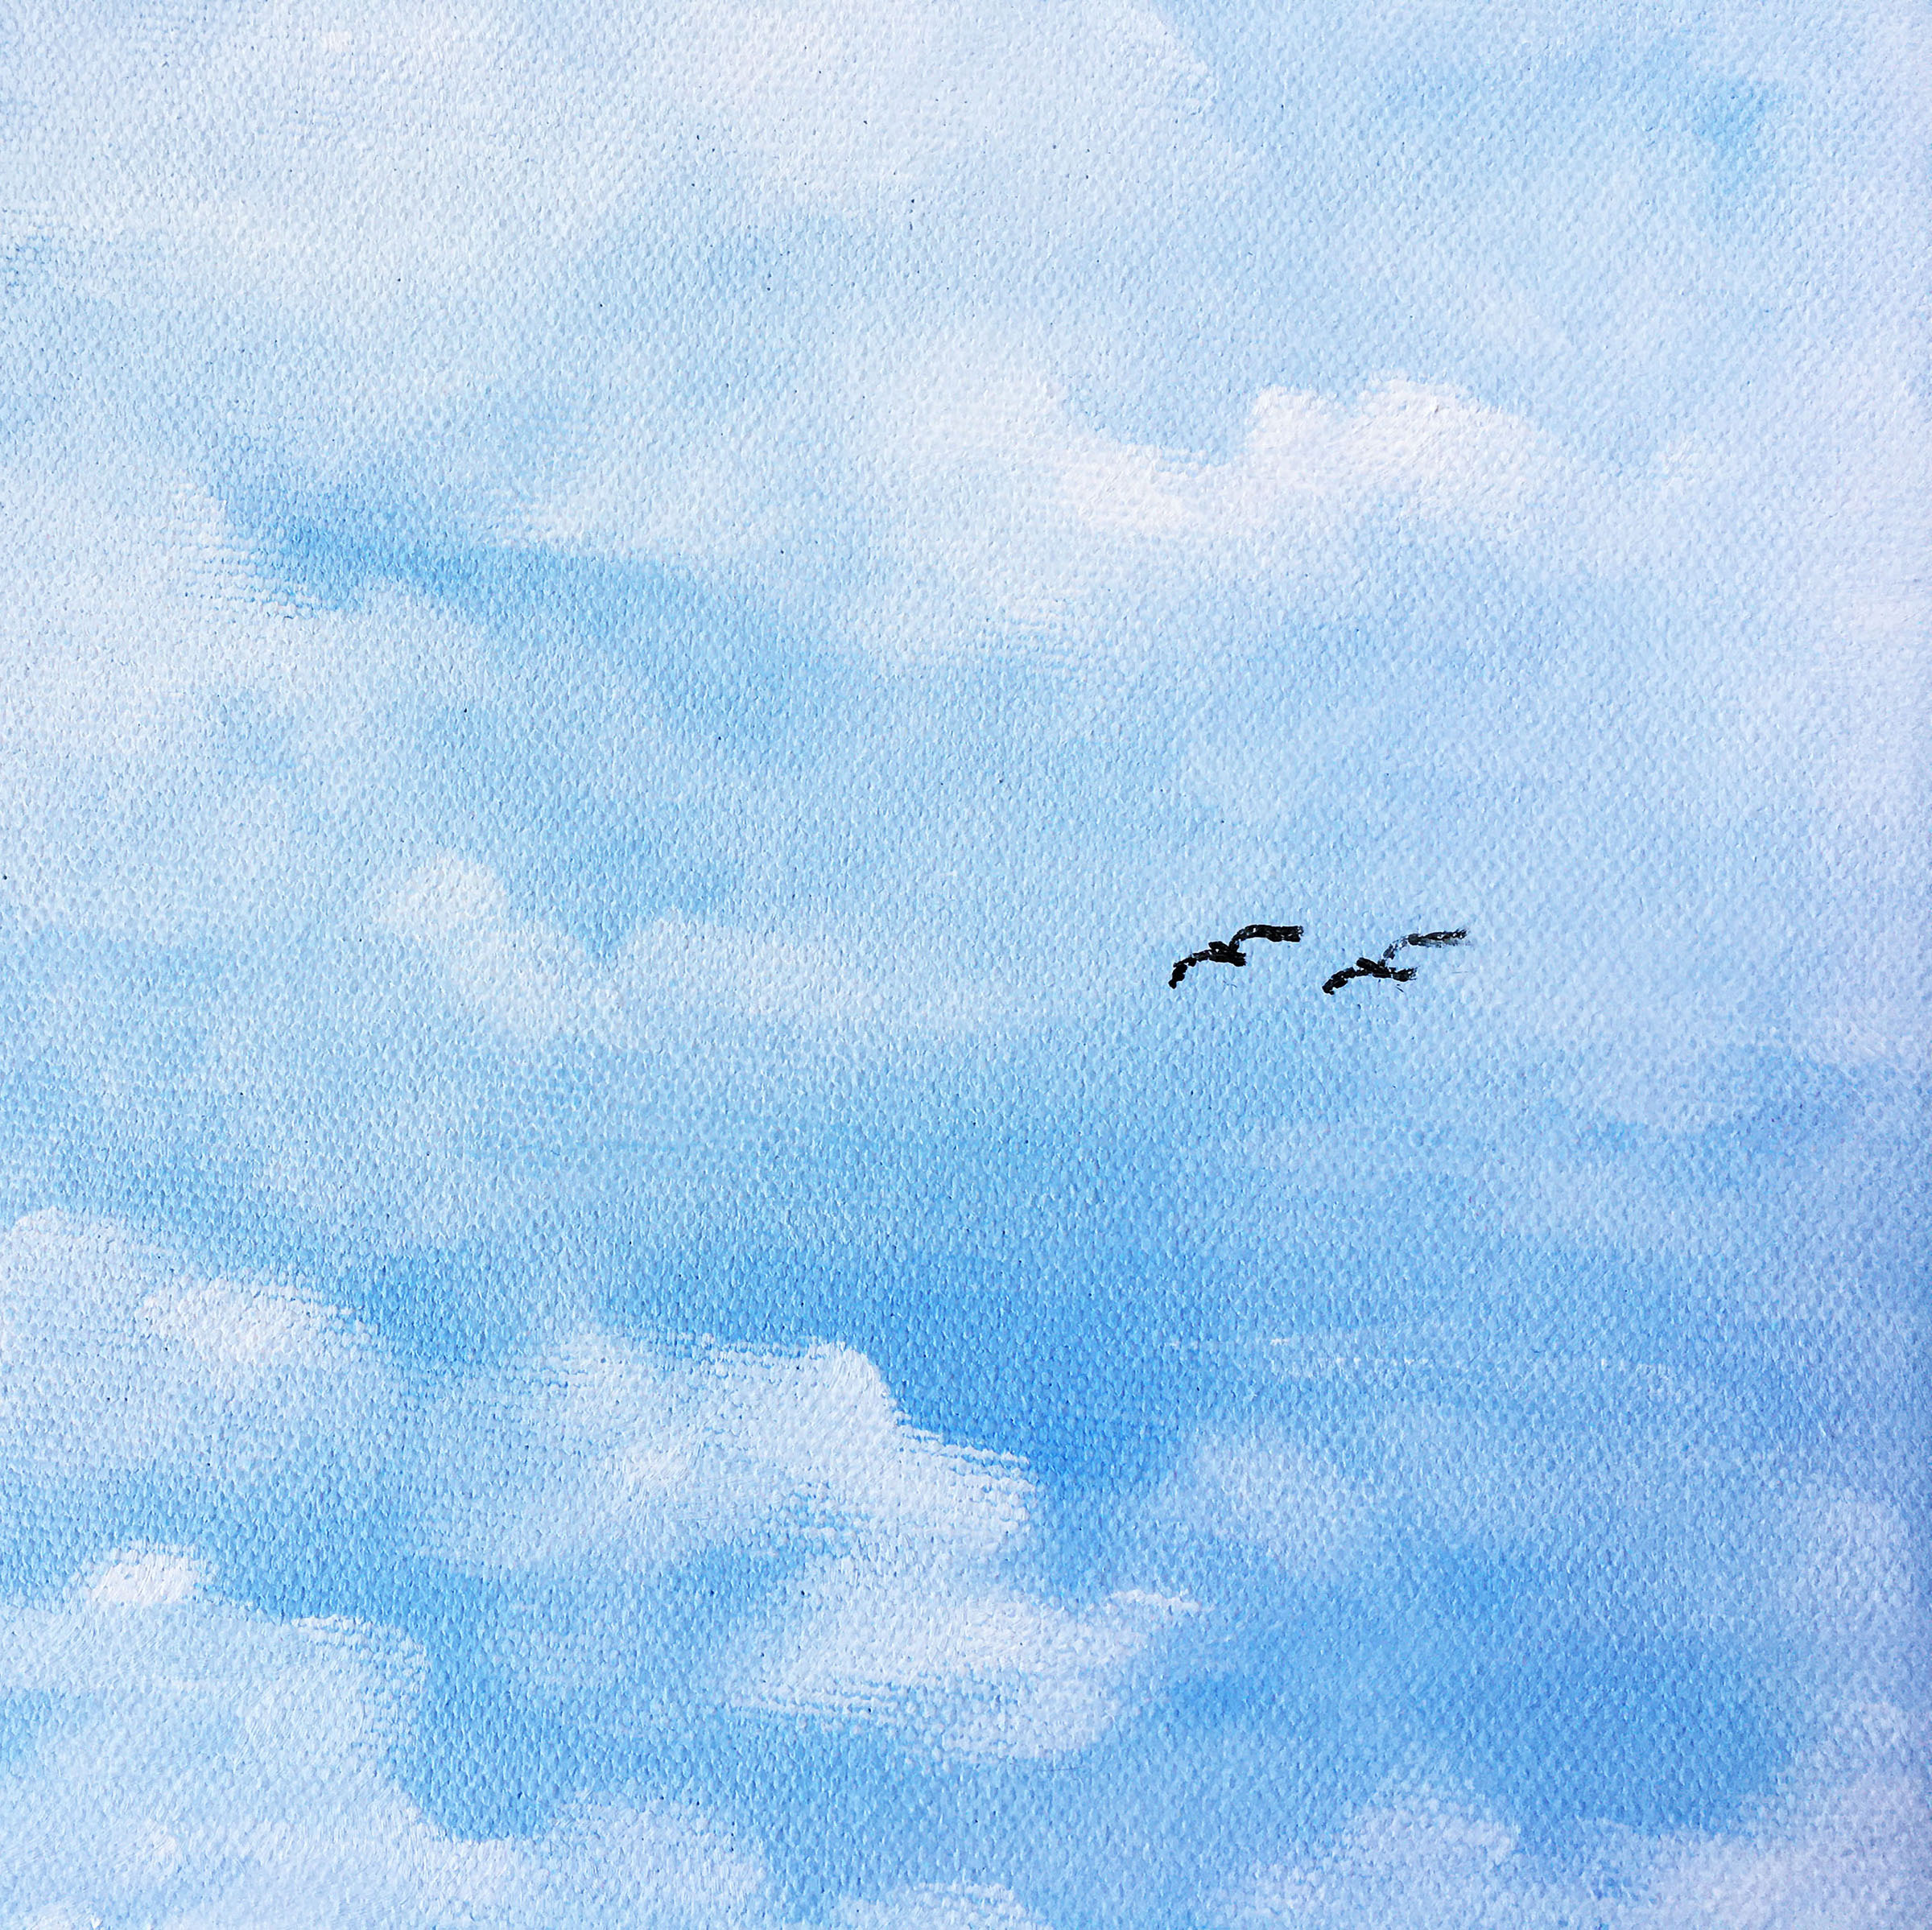 CLOUDS-BIRDS